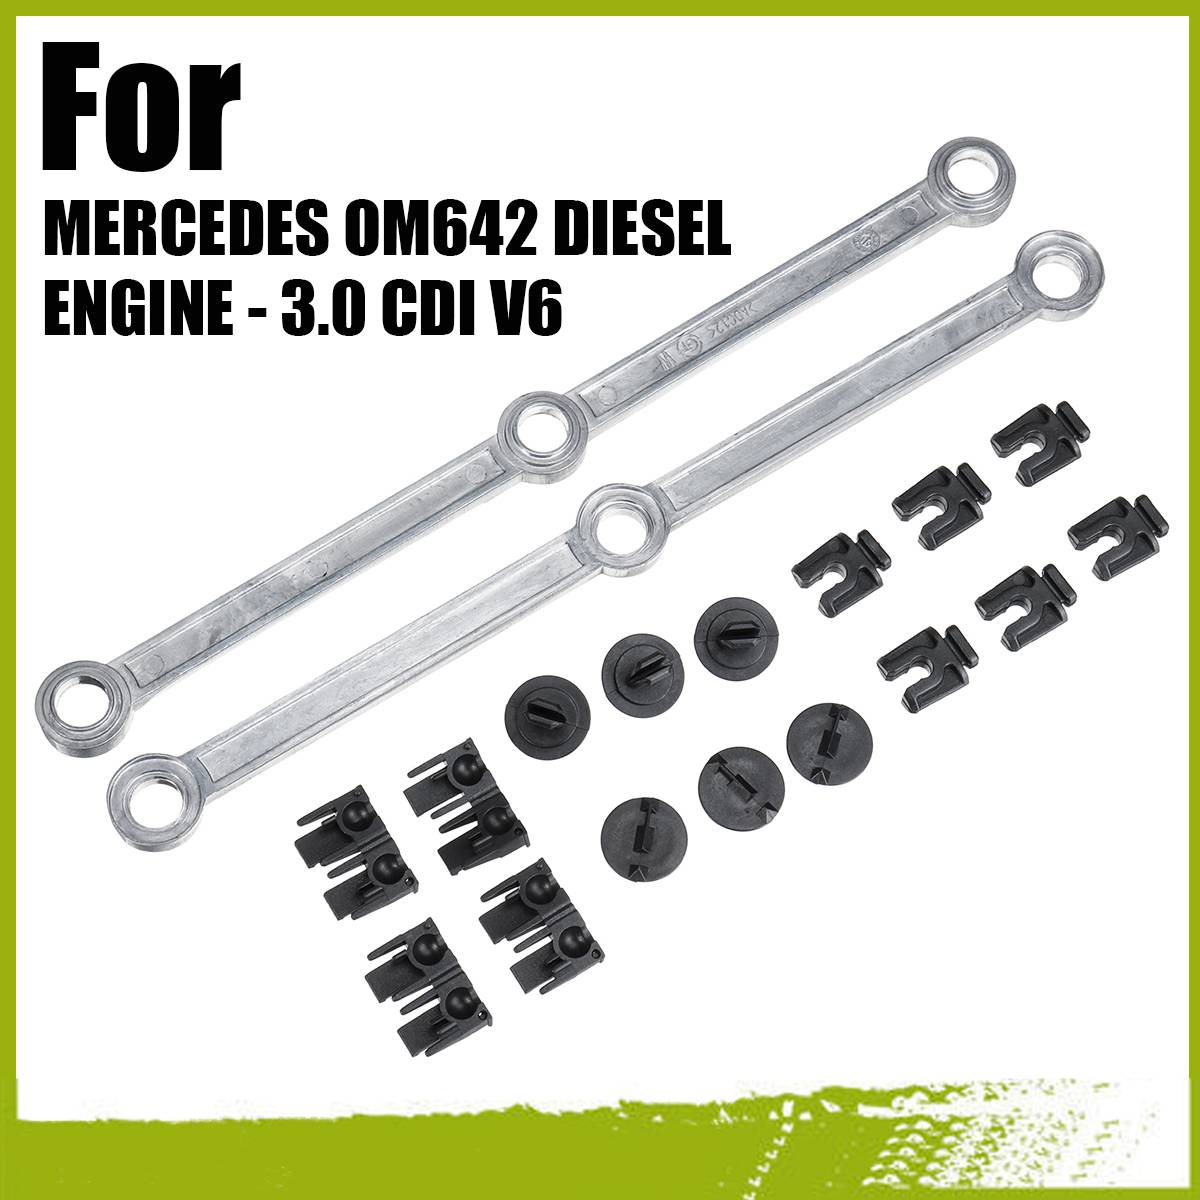 Intake Manifold Runner Connecting Rods For Mercedes <font><b>OM642</b></font> V6 3.0 CDI W164 C219 Repair Tool Kit image